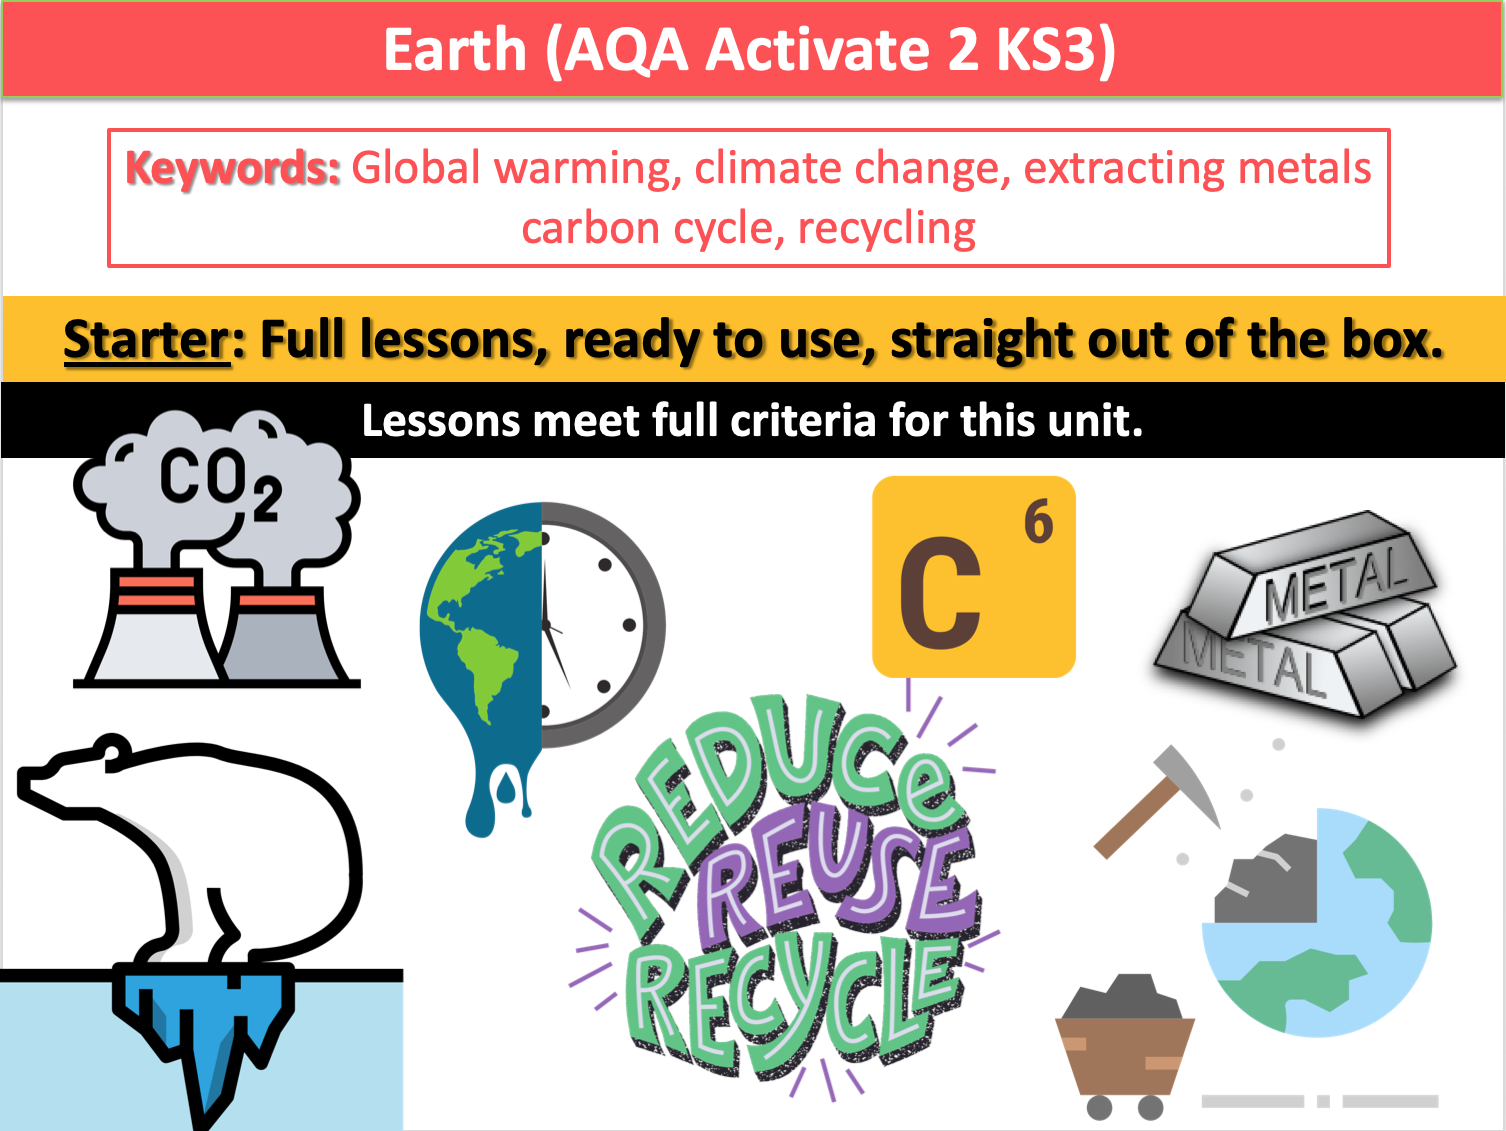 Earth (AQA Activate 2 KS3)